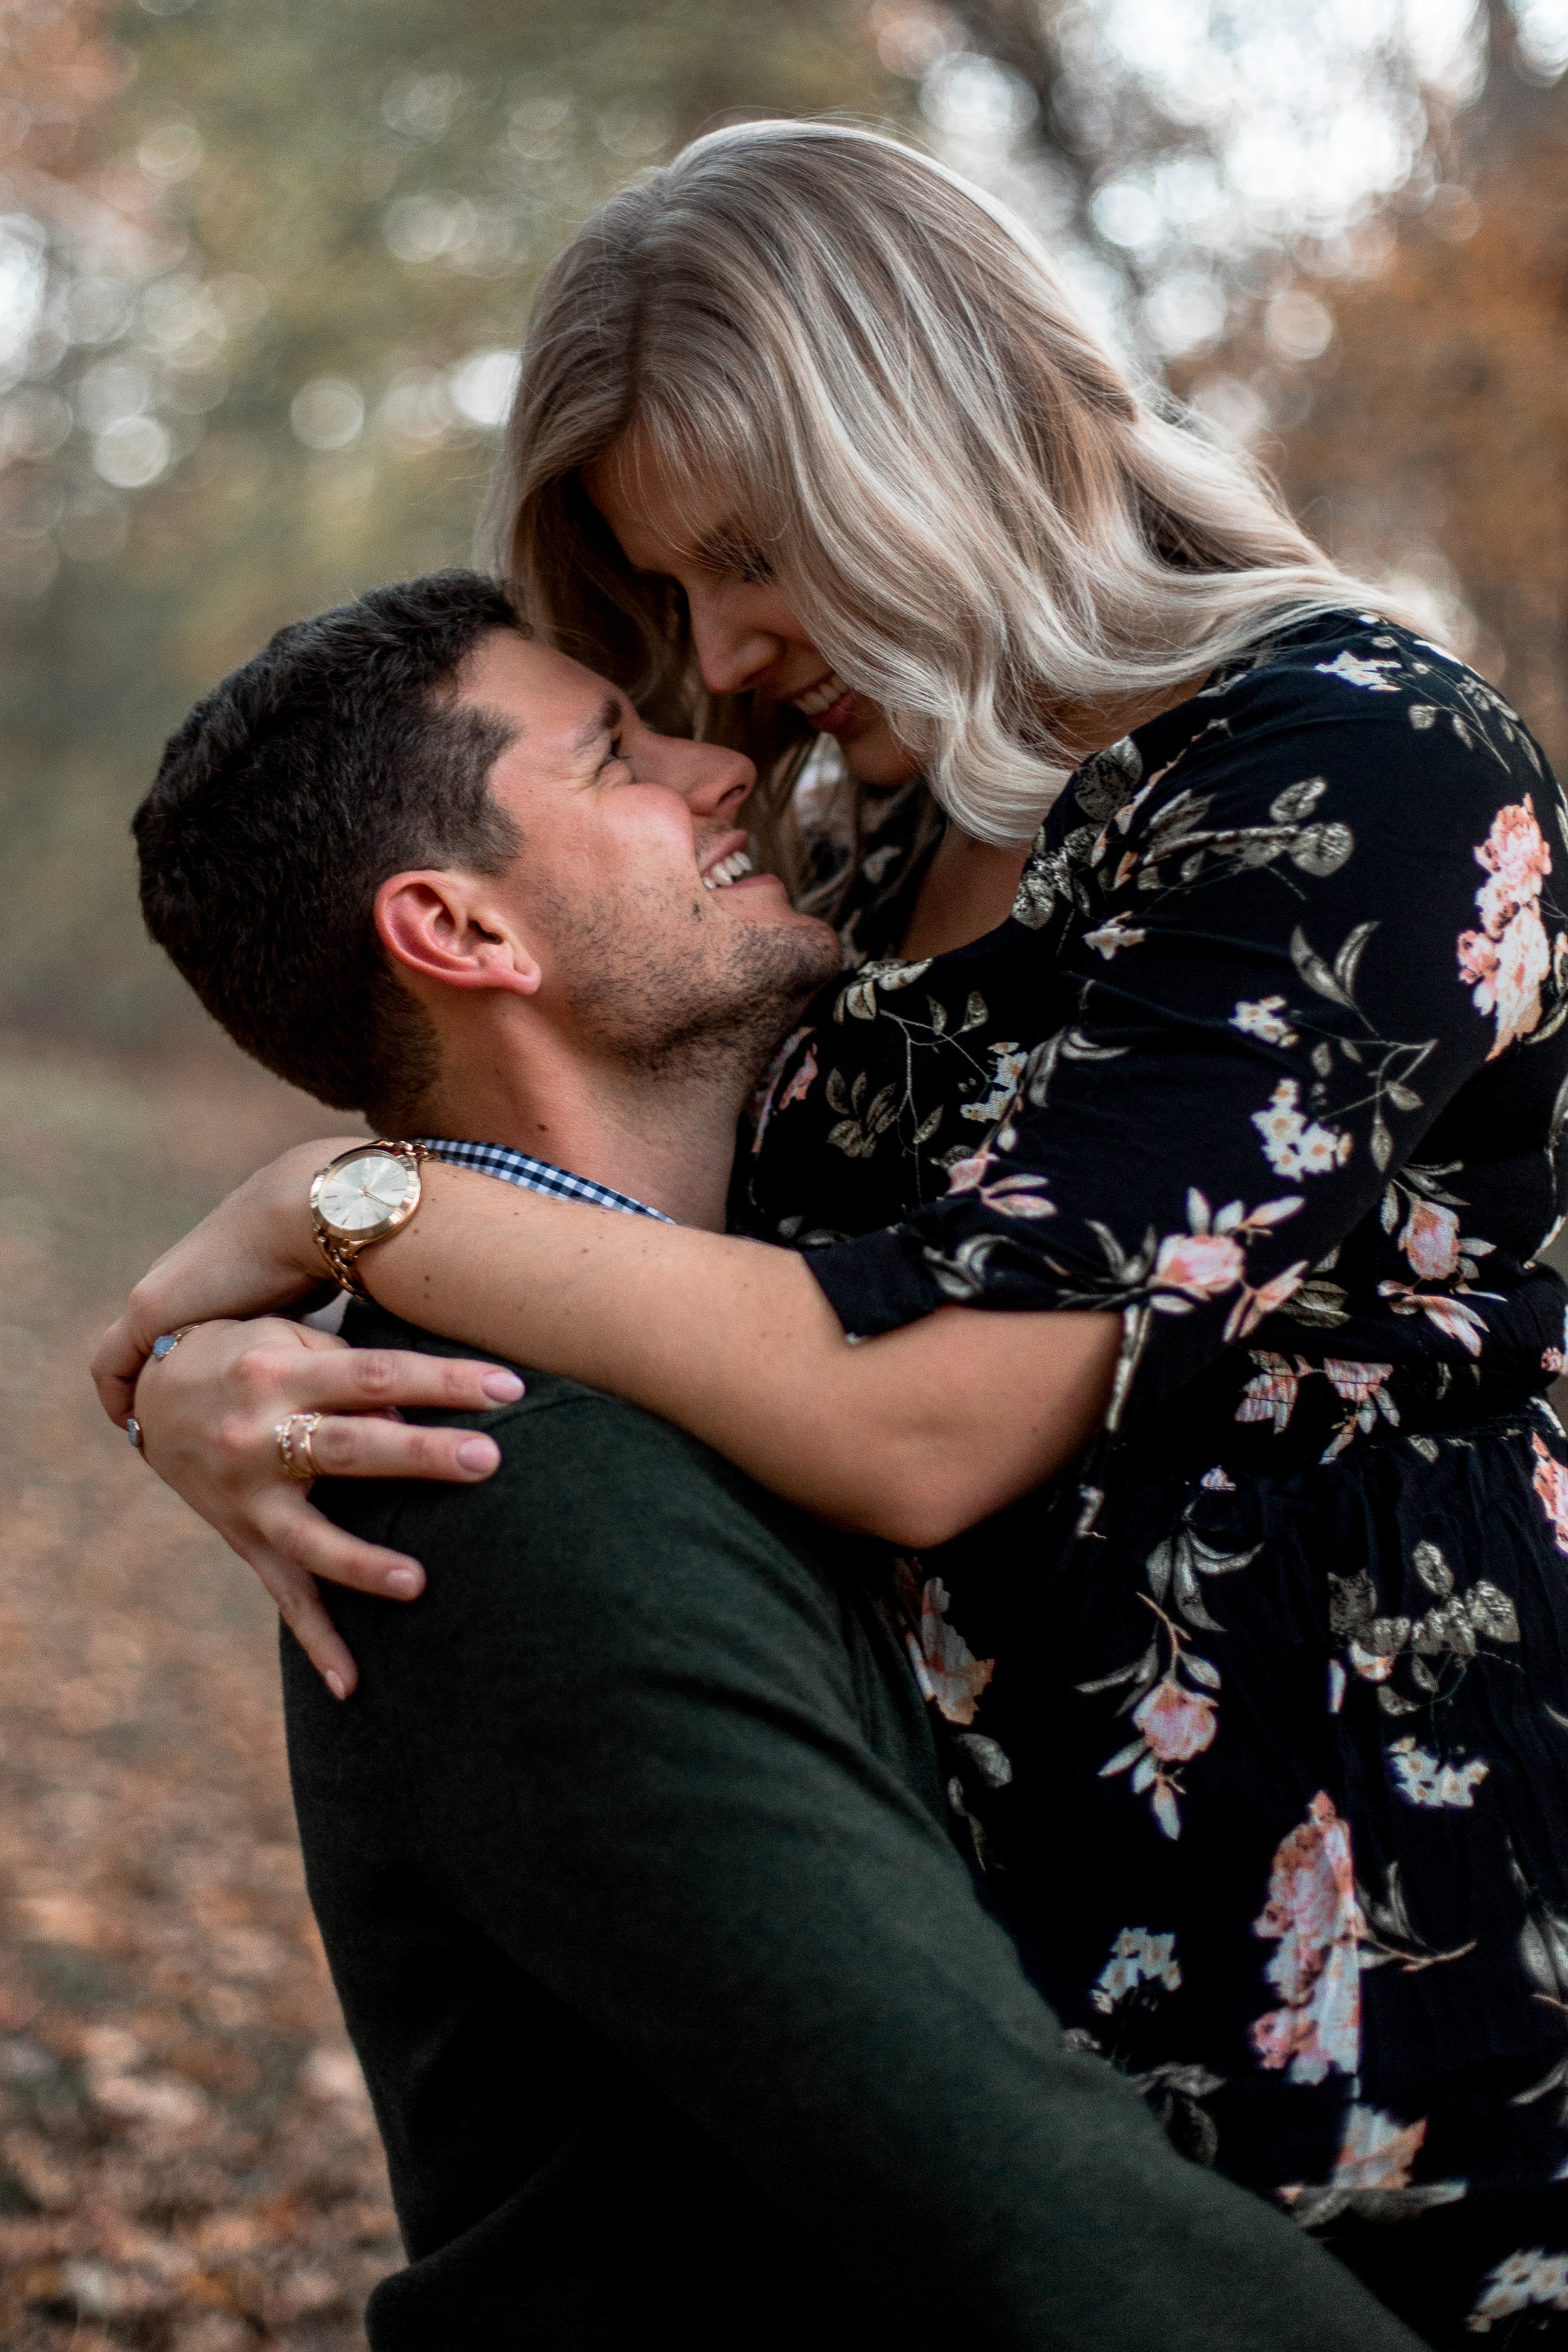 nicole-daacke-photography-carefree-bohemian-lancaster-pa-pennsylvania-engagement-photos-engagement-session-golden-sunset-adventure-session-in-lancaster-pa-lancaster-pa-outdoor-wedding-photographer-50.jpg